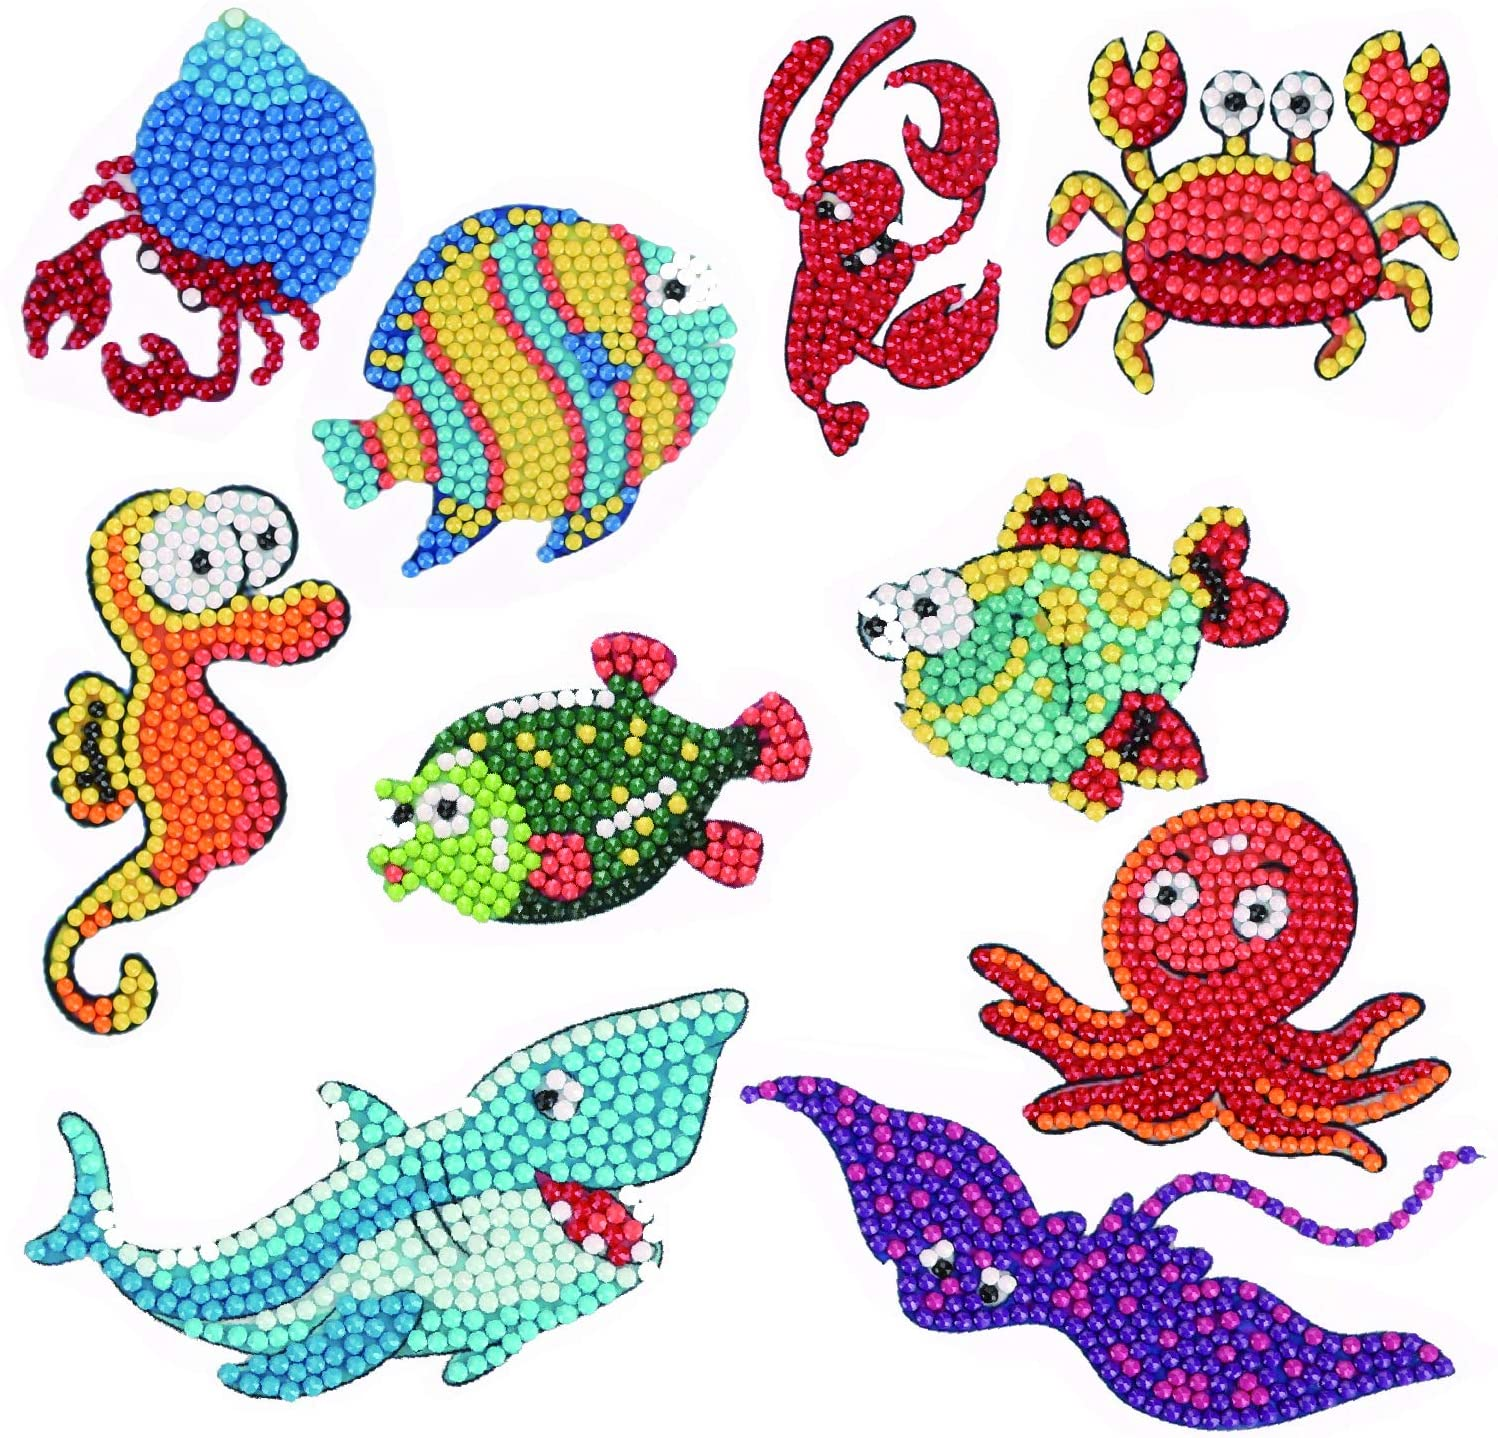 Easy Small Diamond Painting Stickers Kits for Kids and Beginners Skill Level Diamond Embroidery - Round Drill Painting Sticker Sea World